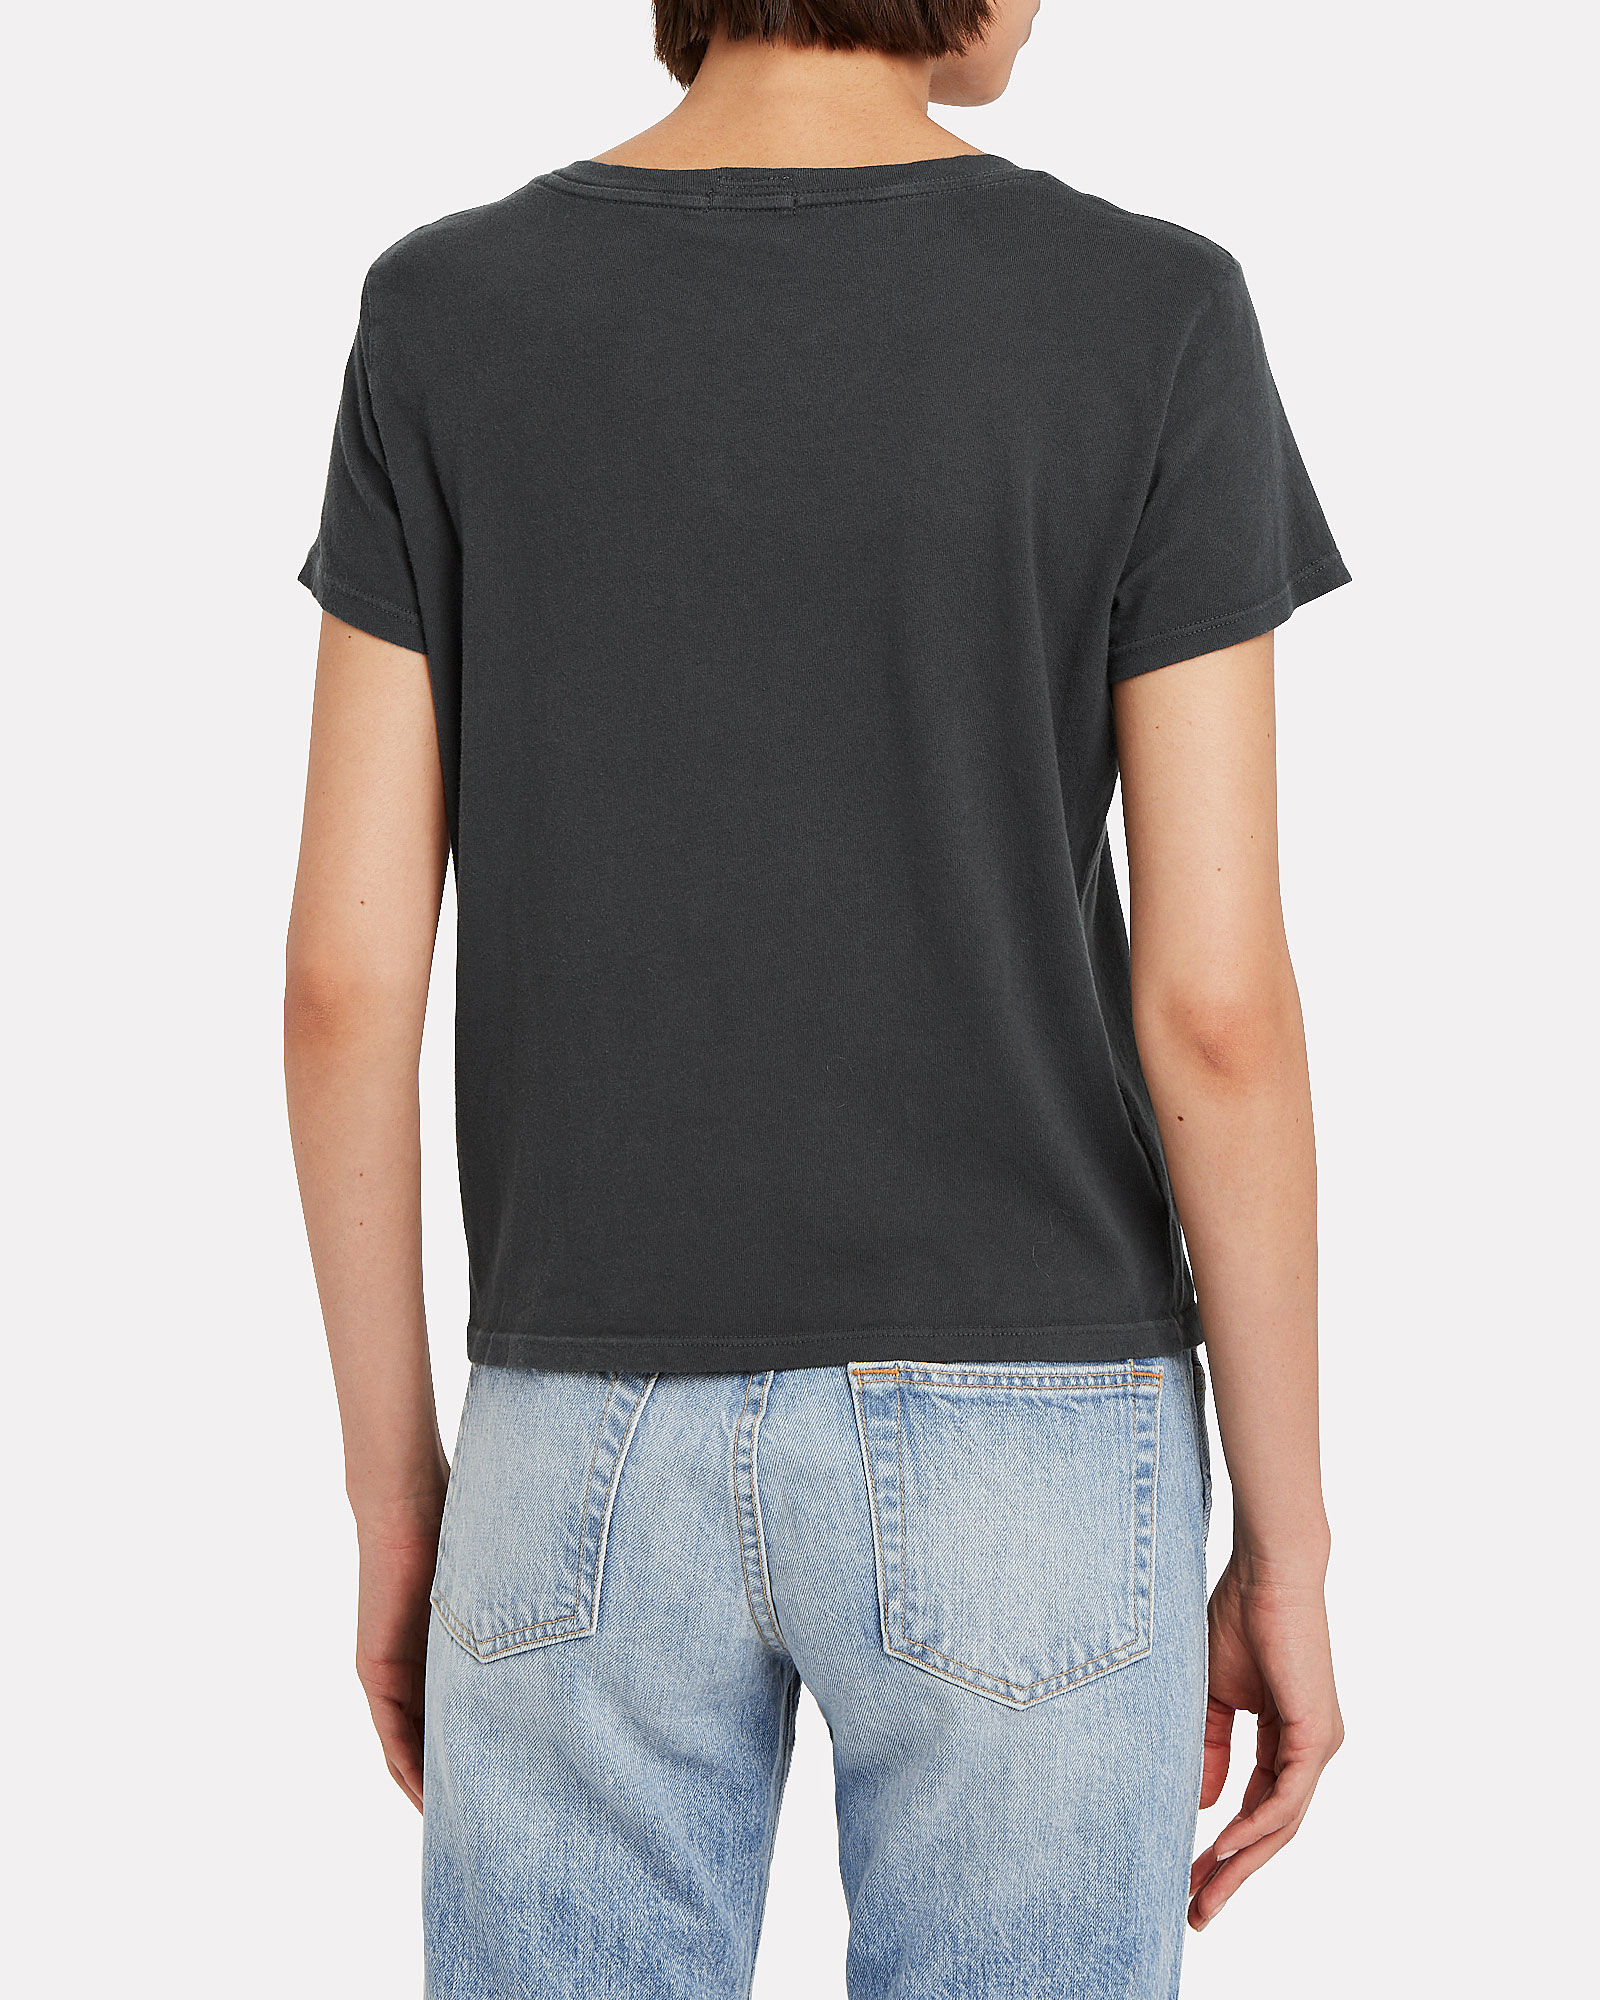 Lil Goodie Graphic Jersey T-Shirt, BLACK, hi-res